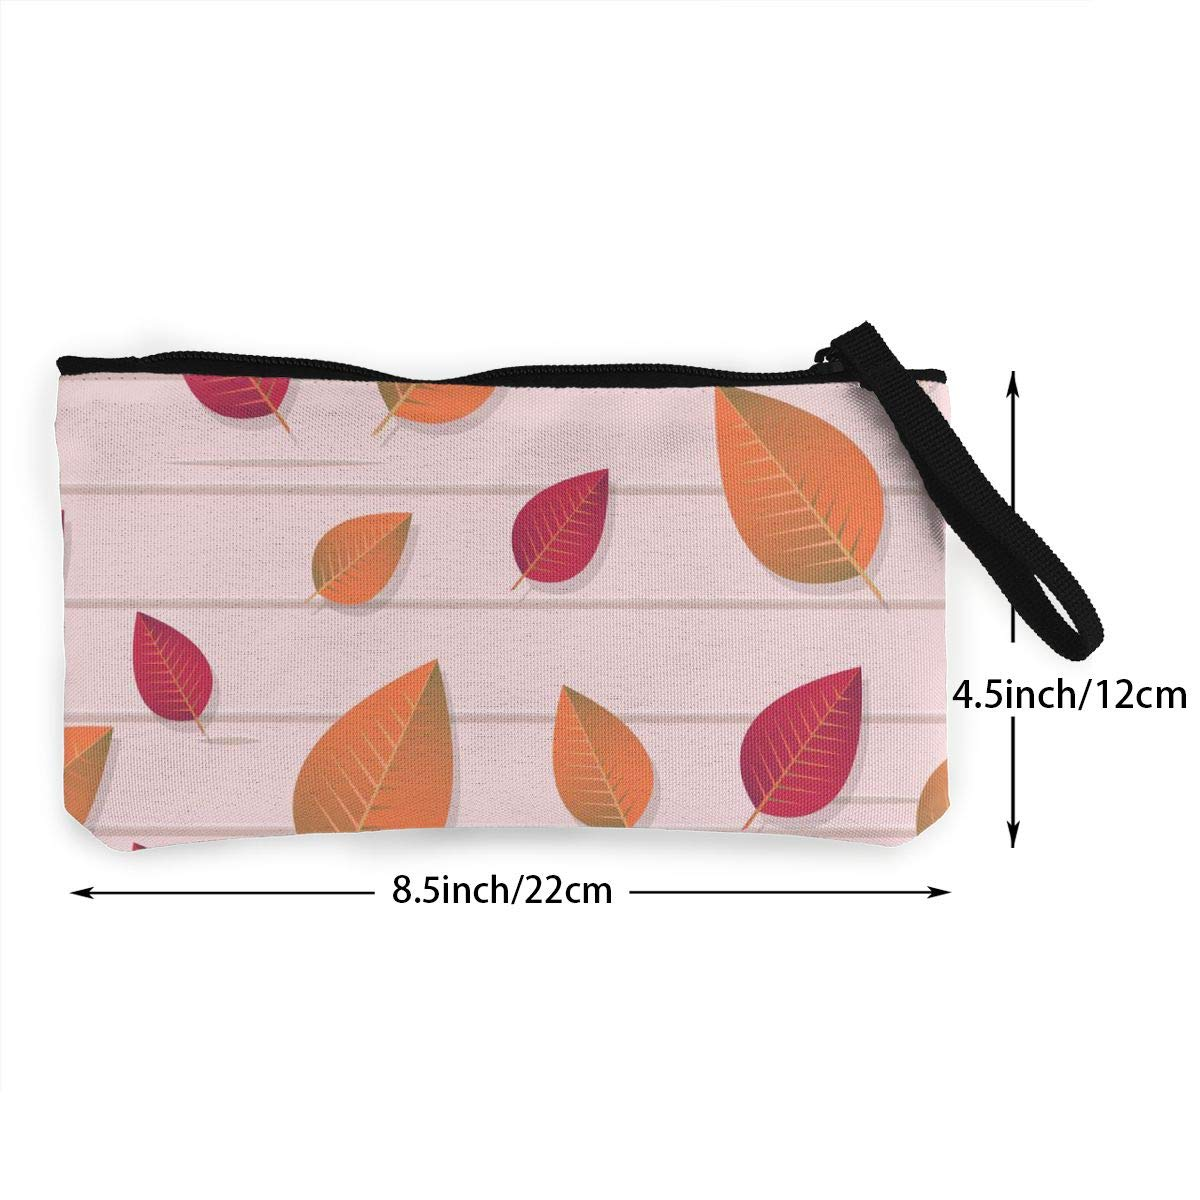 Yamini Red and Orange Oval Leaves Cute Looking Coin Purse Small and Exquisite Going Out to Carry Purse